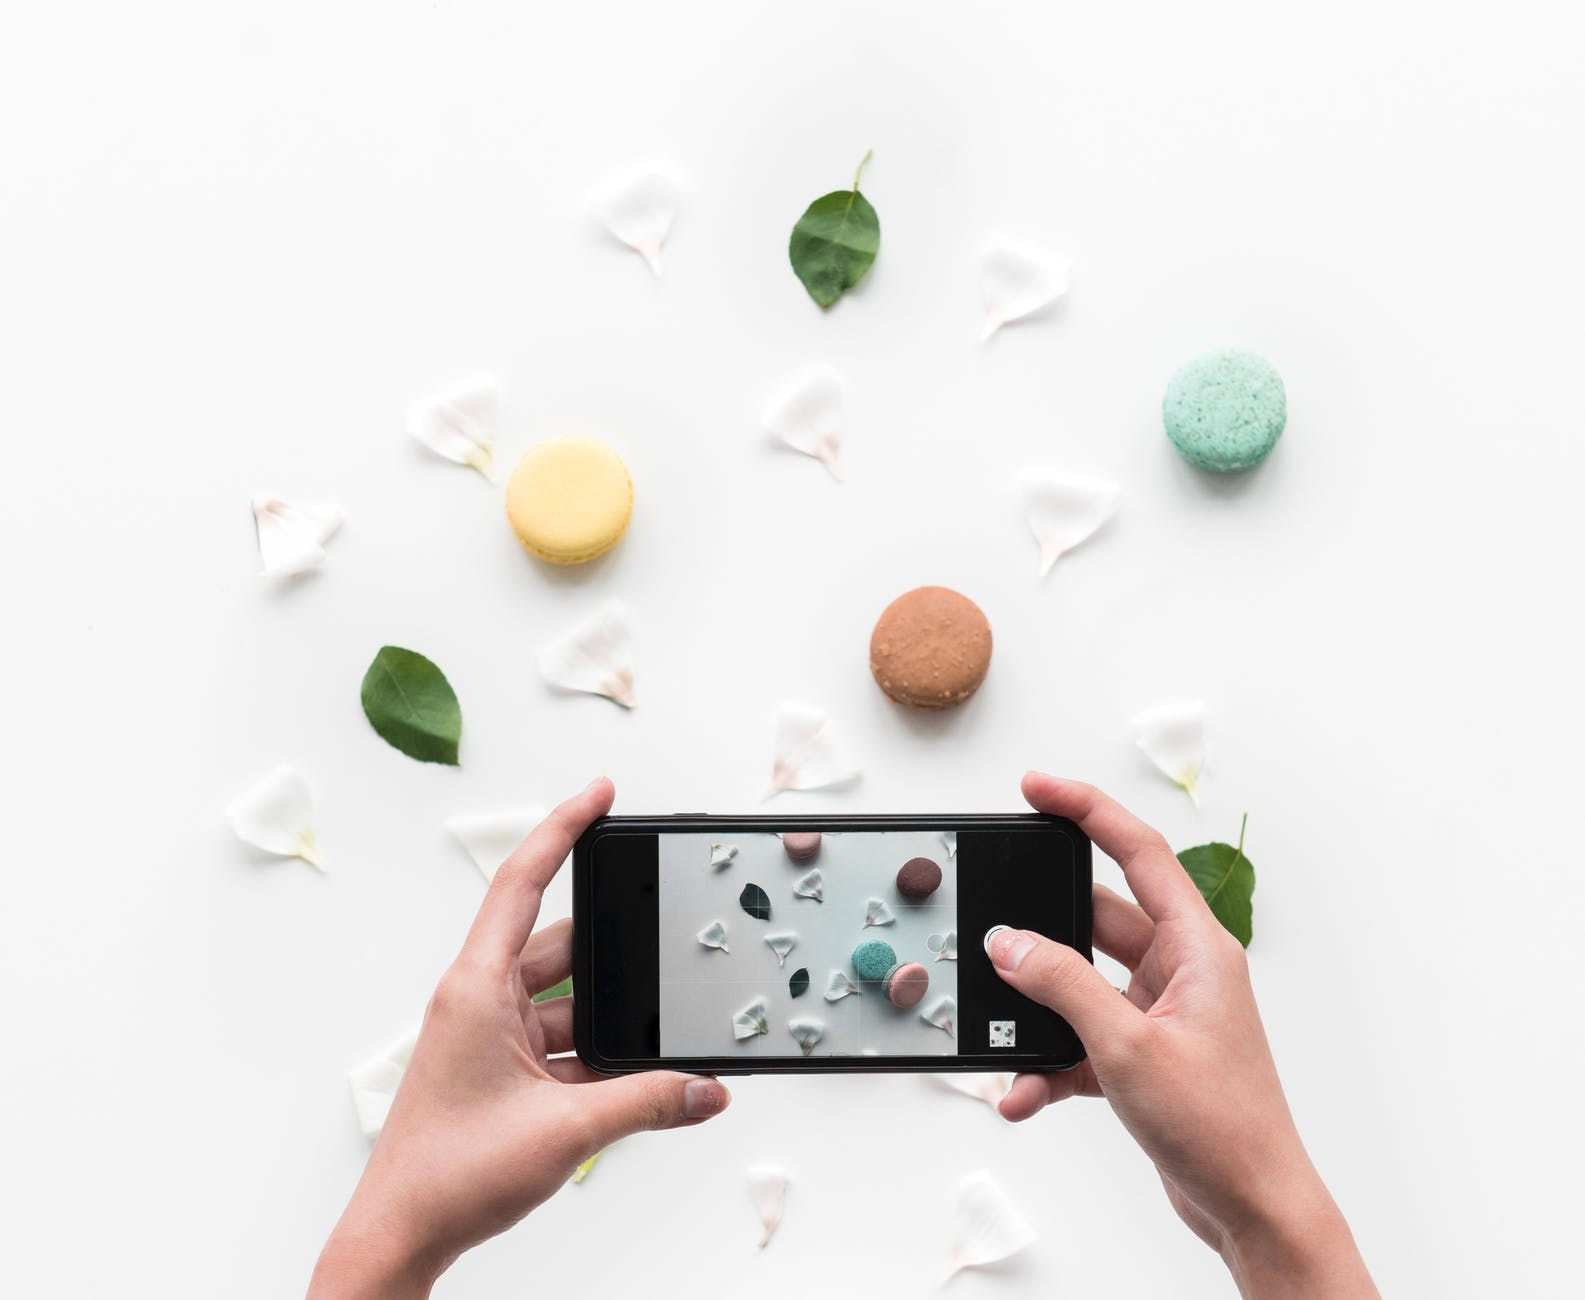 person taking photo of food and petals through smartphone